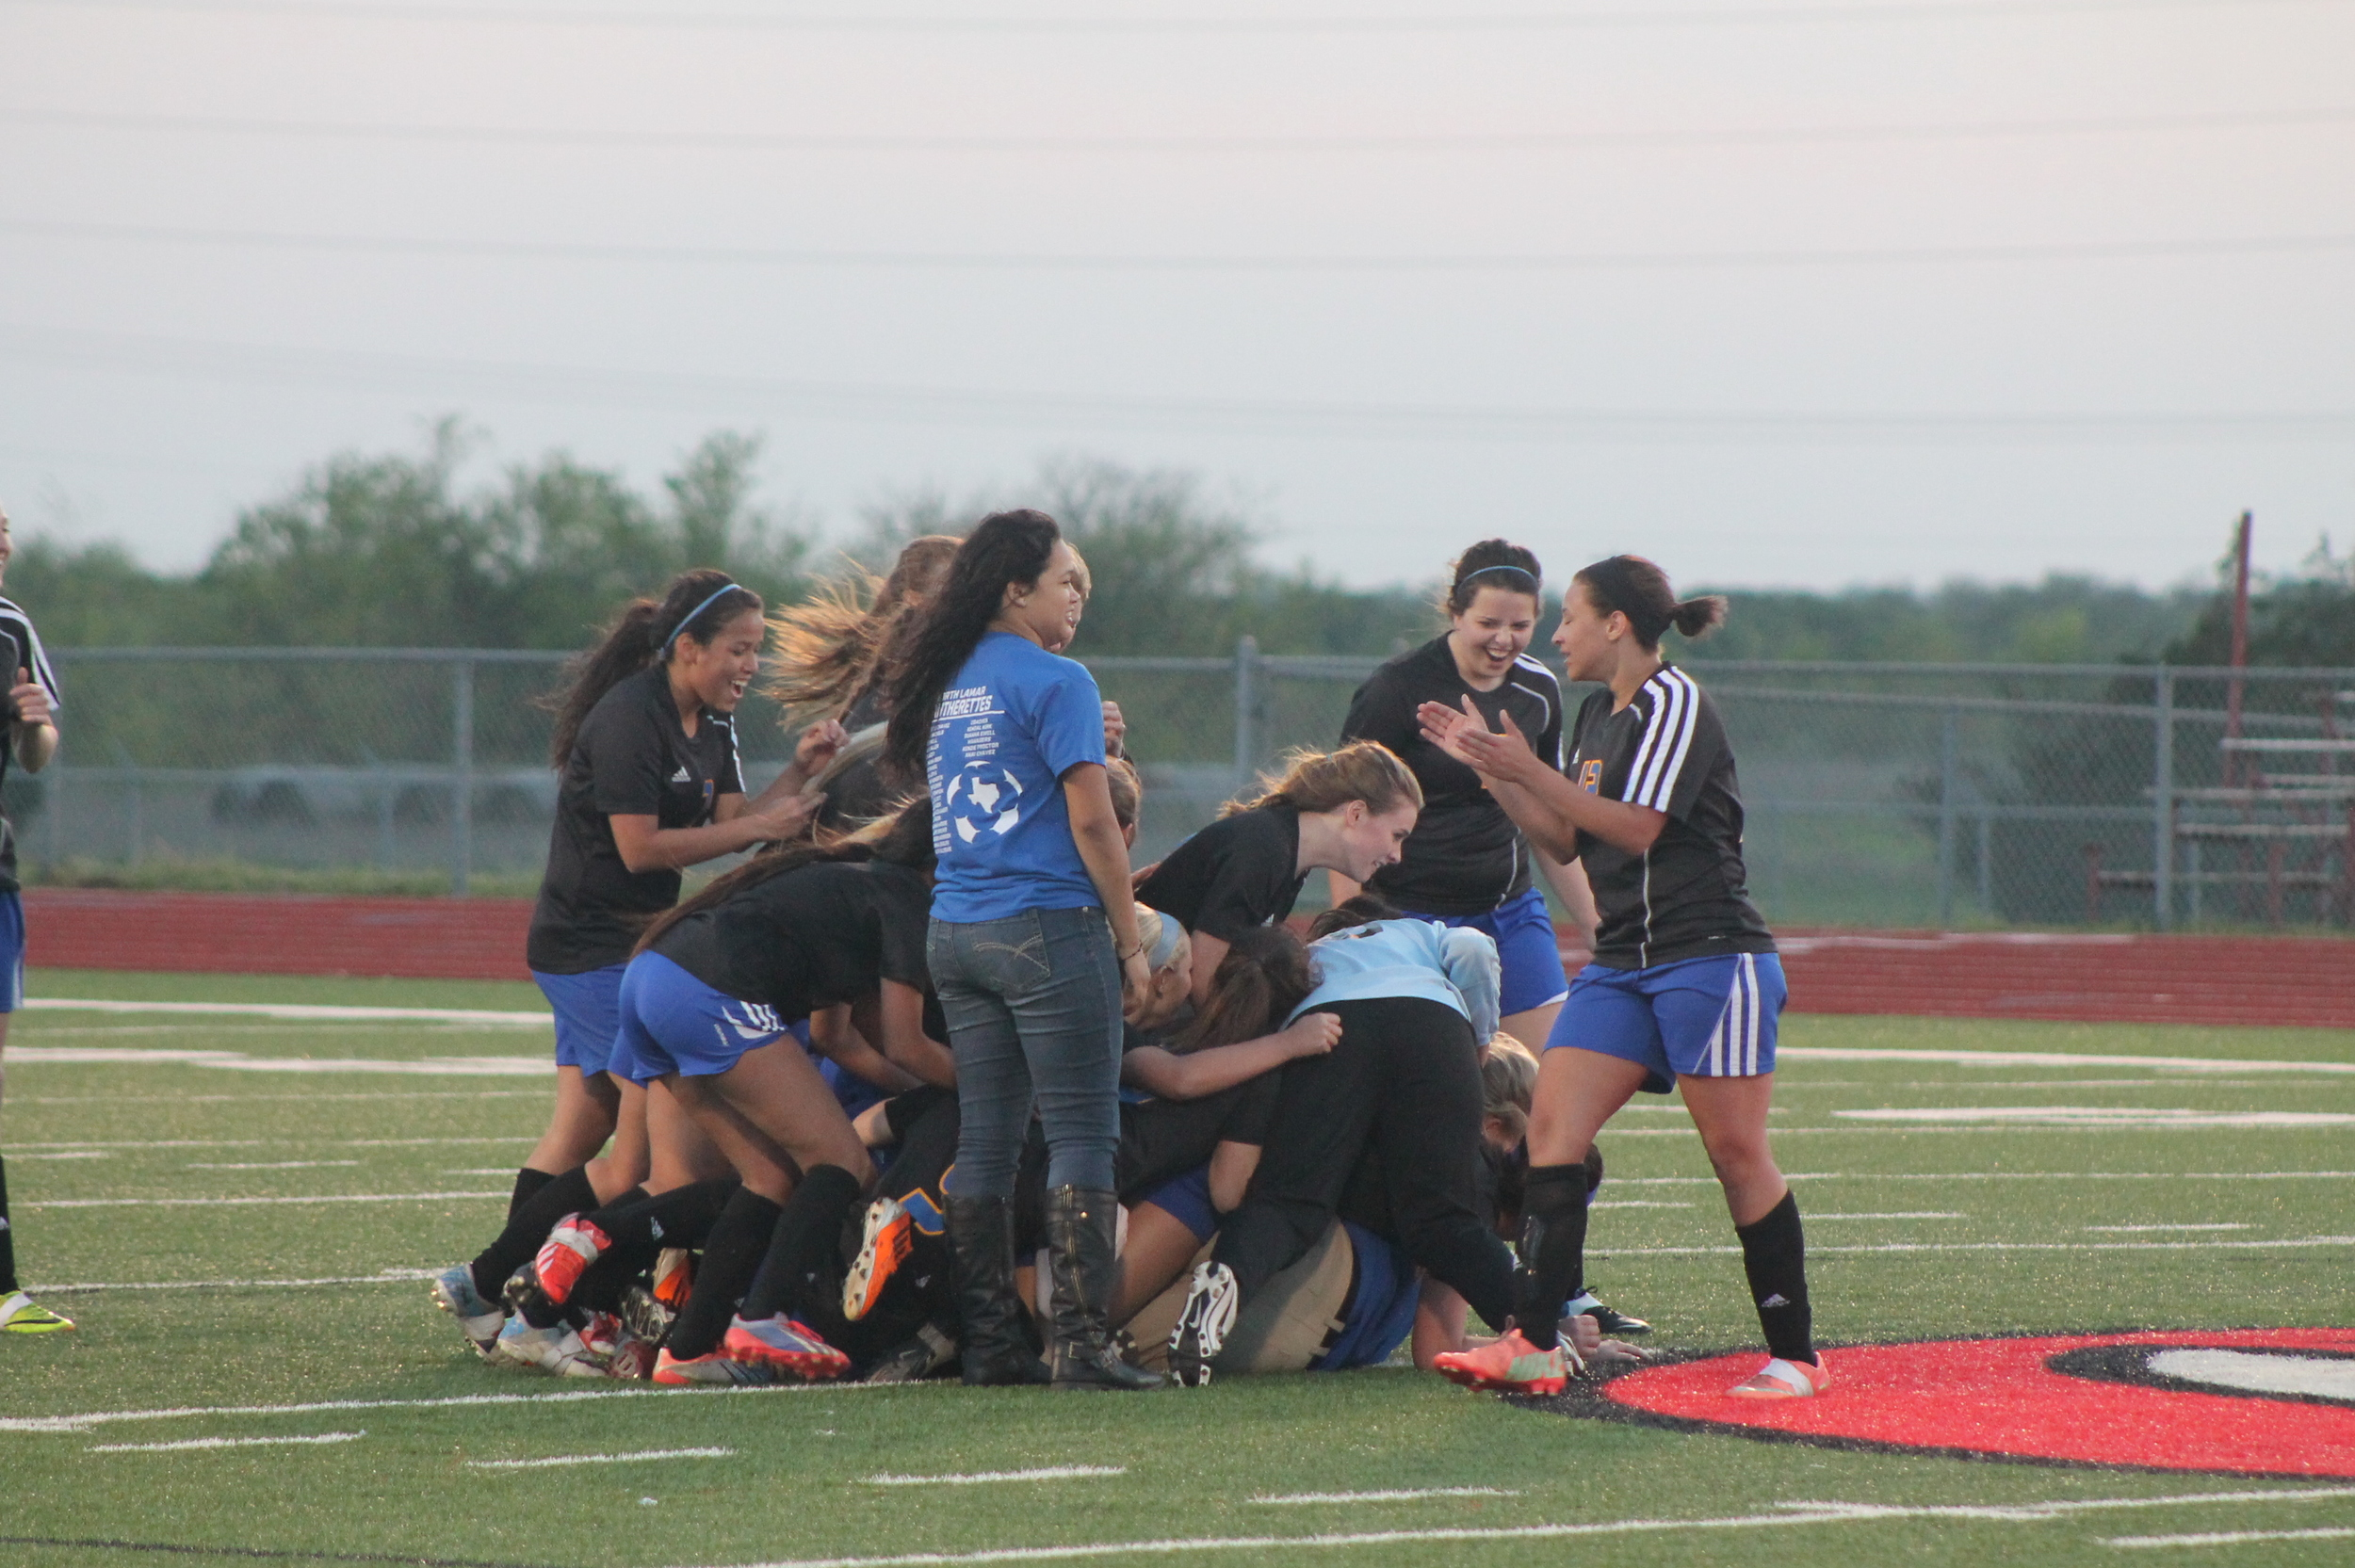 (Photos by Adam Routon) Pantherettes celebrating after their Area Championship Friday Night.